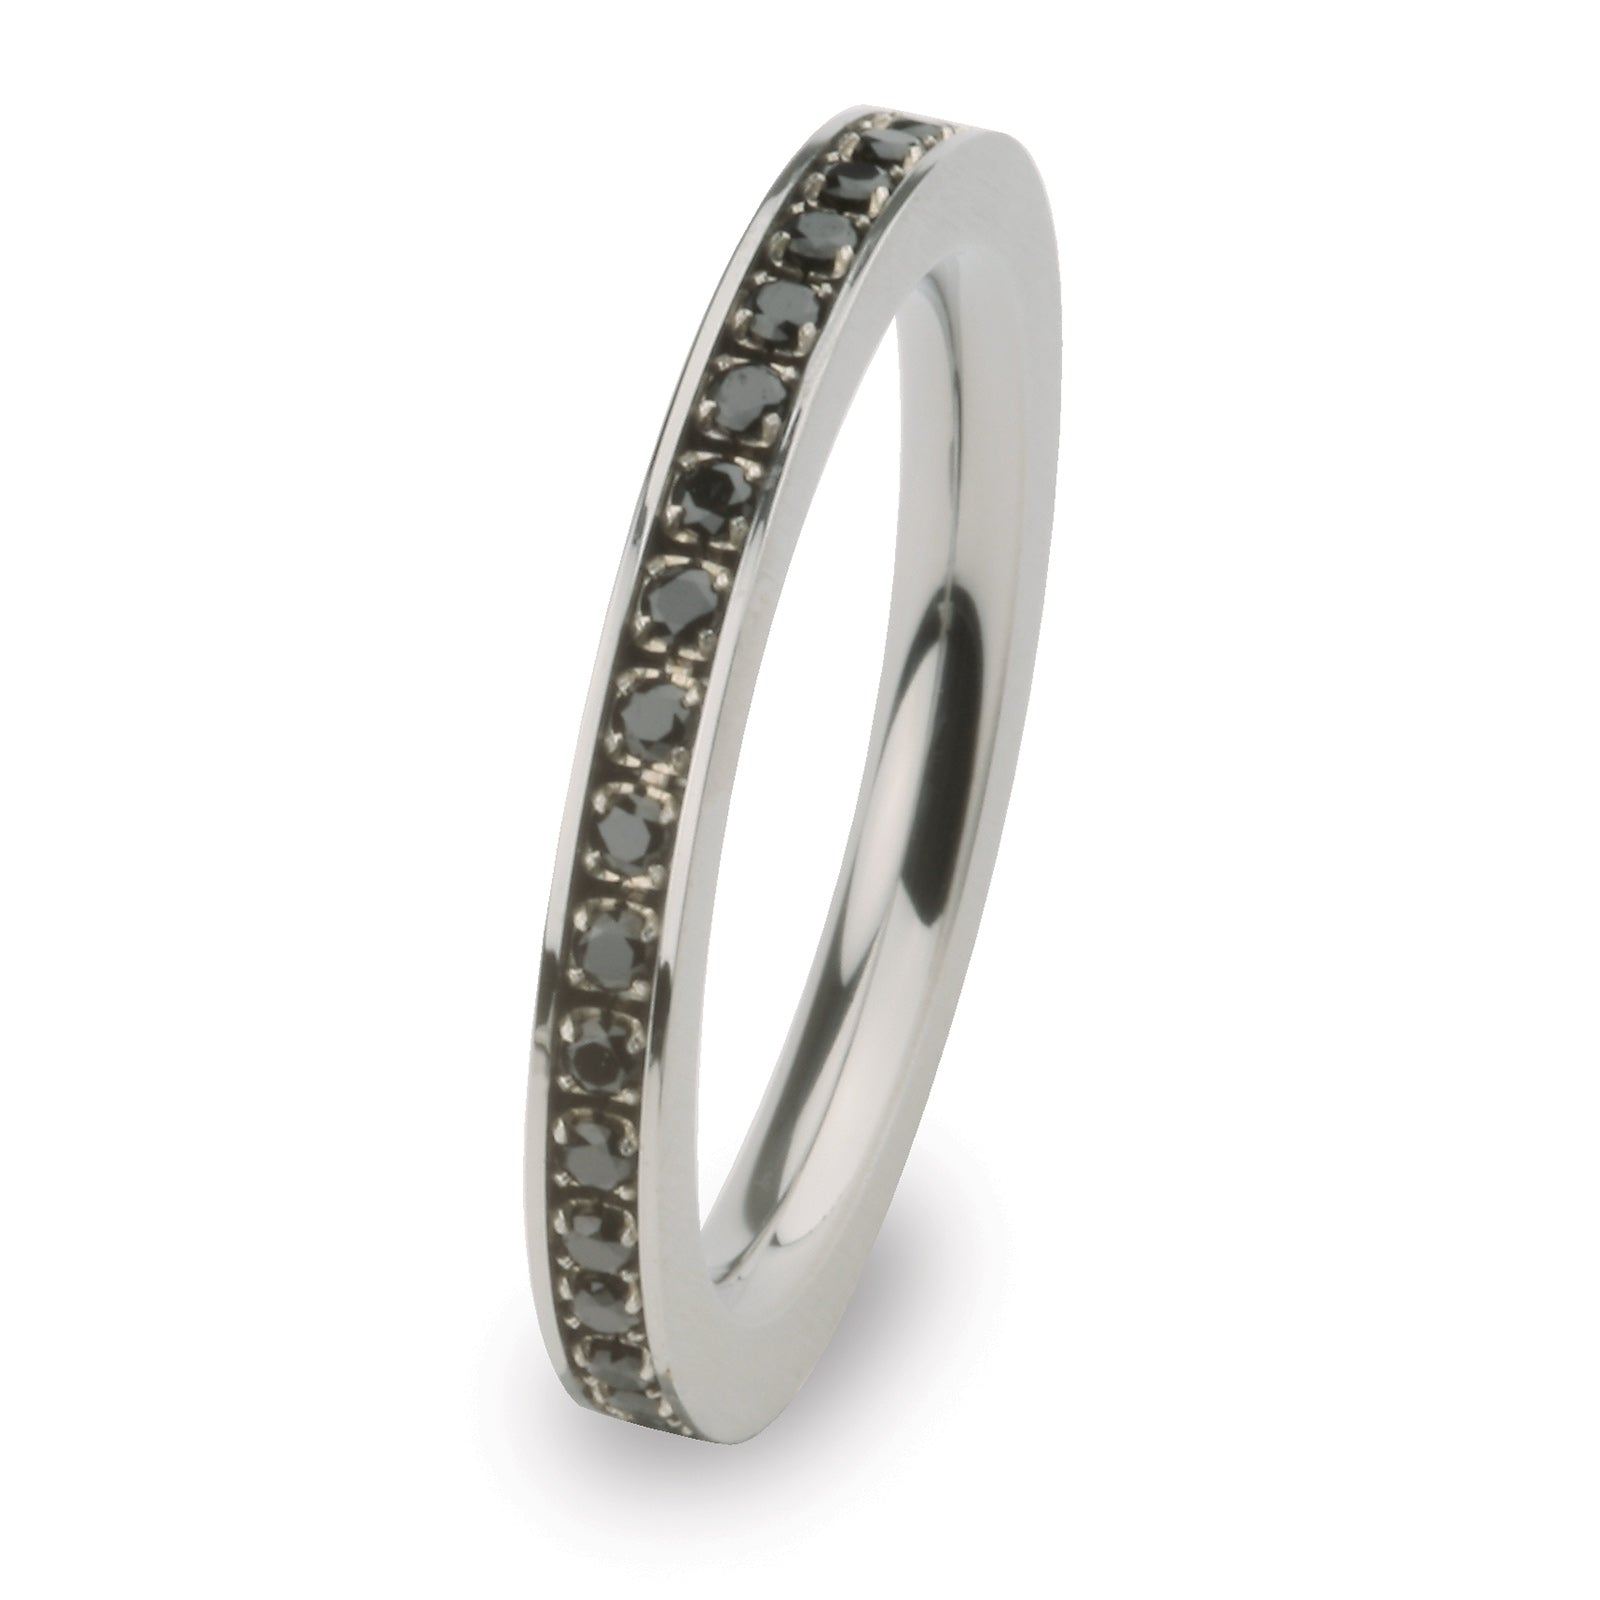 R265BL Stainless Steel Ring